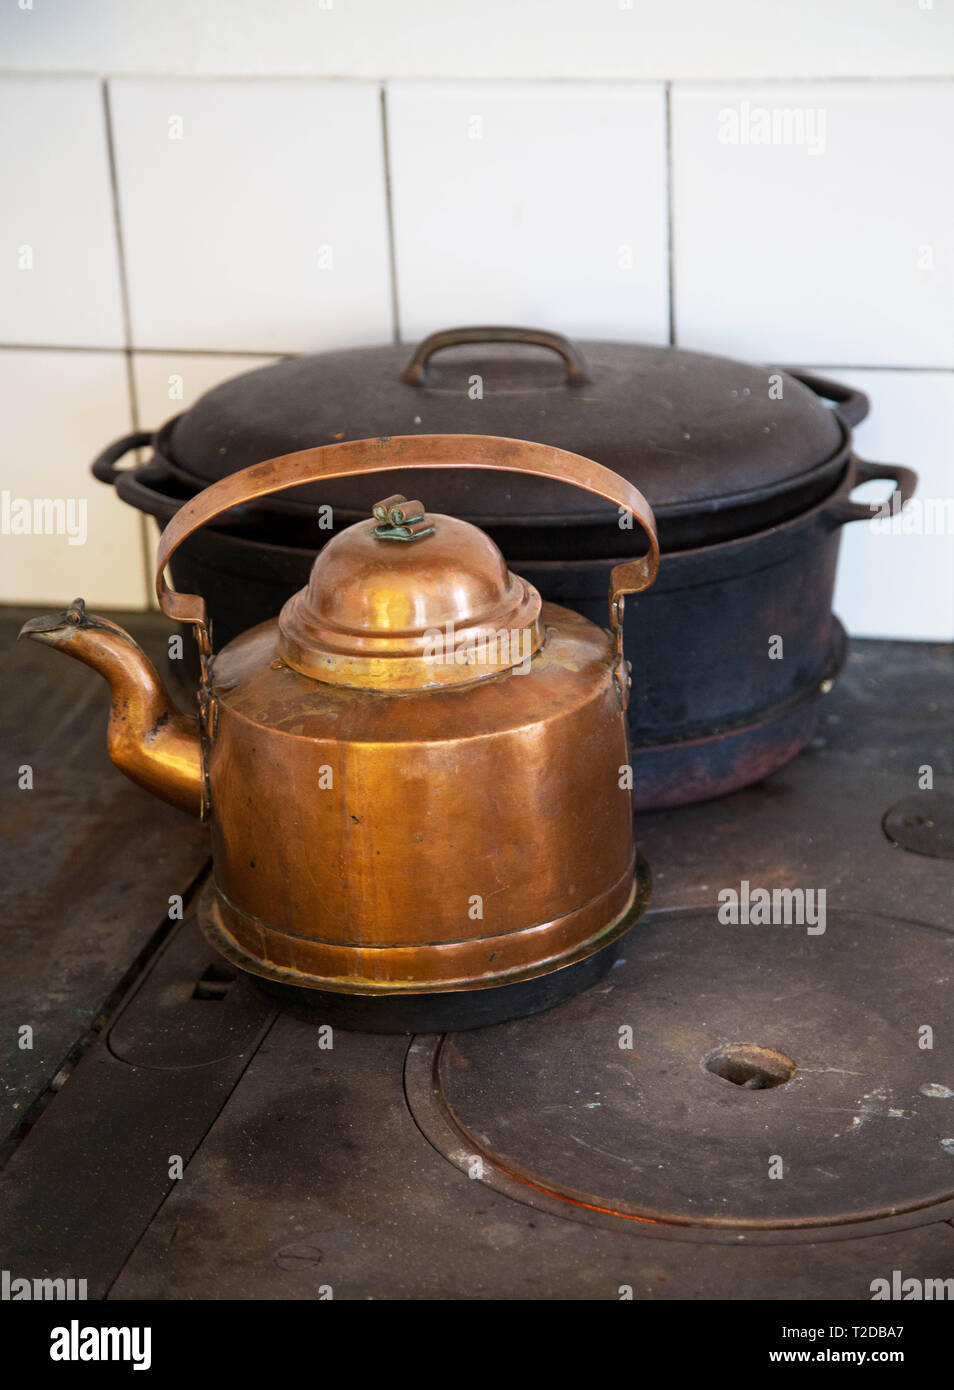 Coffee pot on an old wood stove in a kitchen. - Stock Image